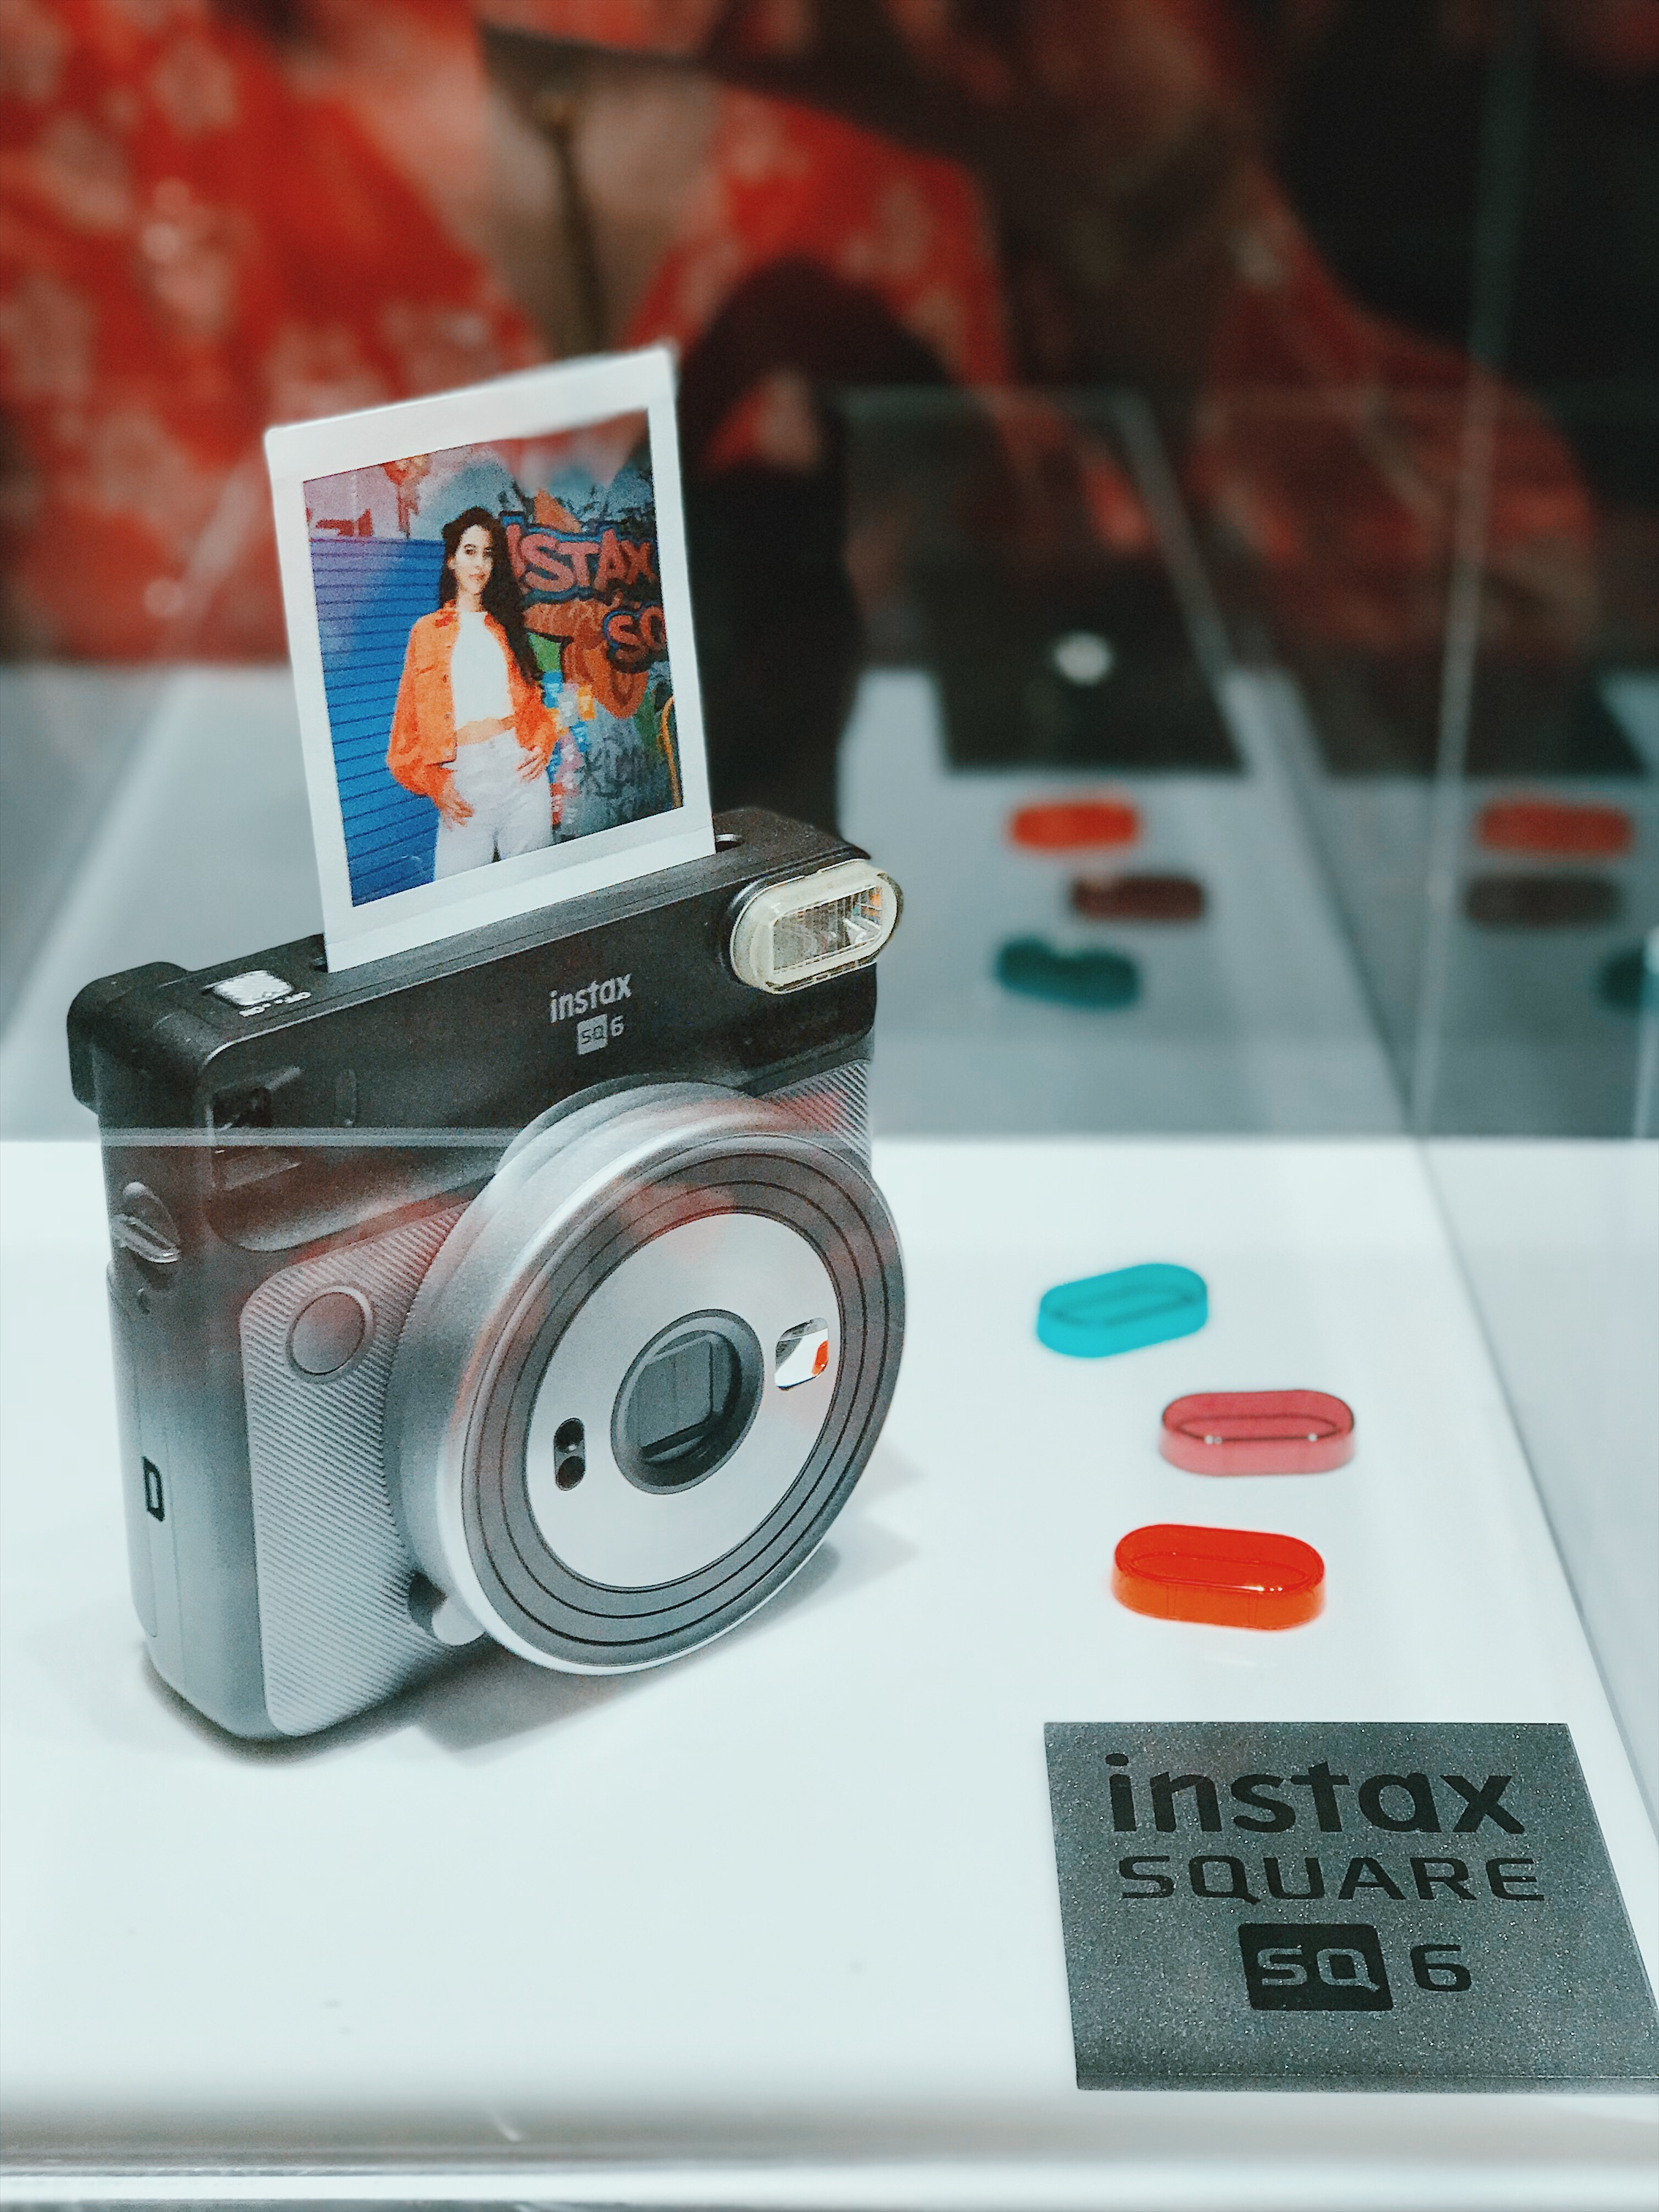 The Instax Square SQ6 comes in Graphite Grey (pictured), Blush Gold and Pearl White &includes 3 flash colour filters